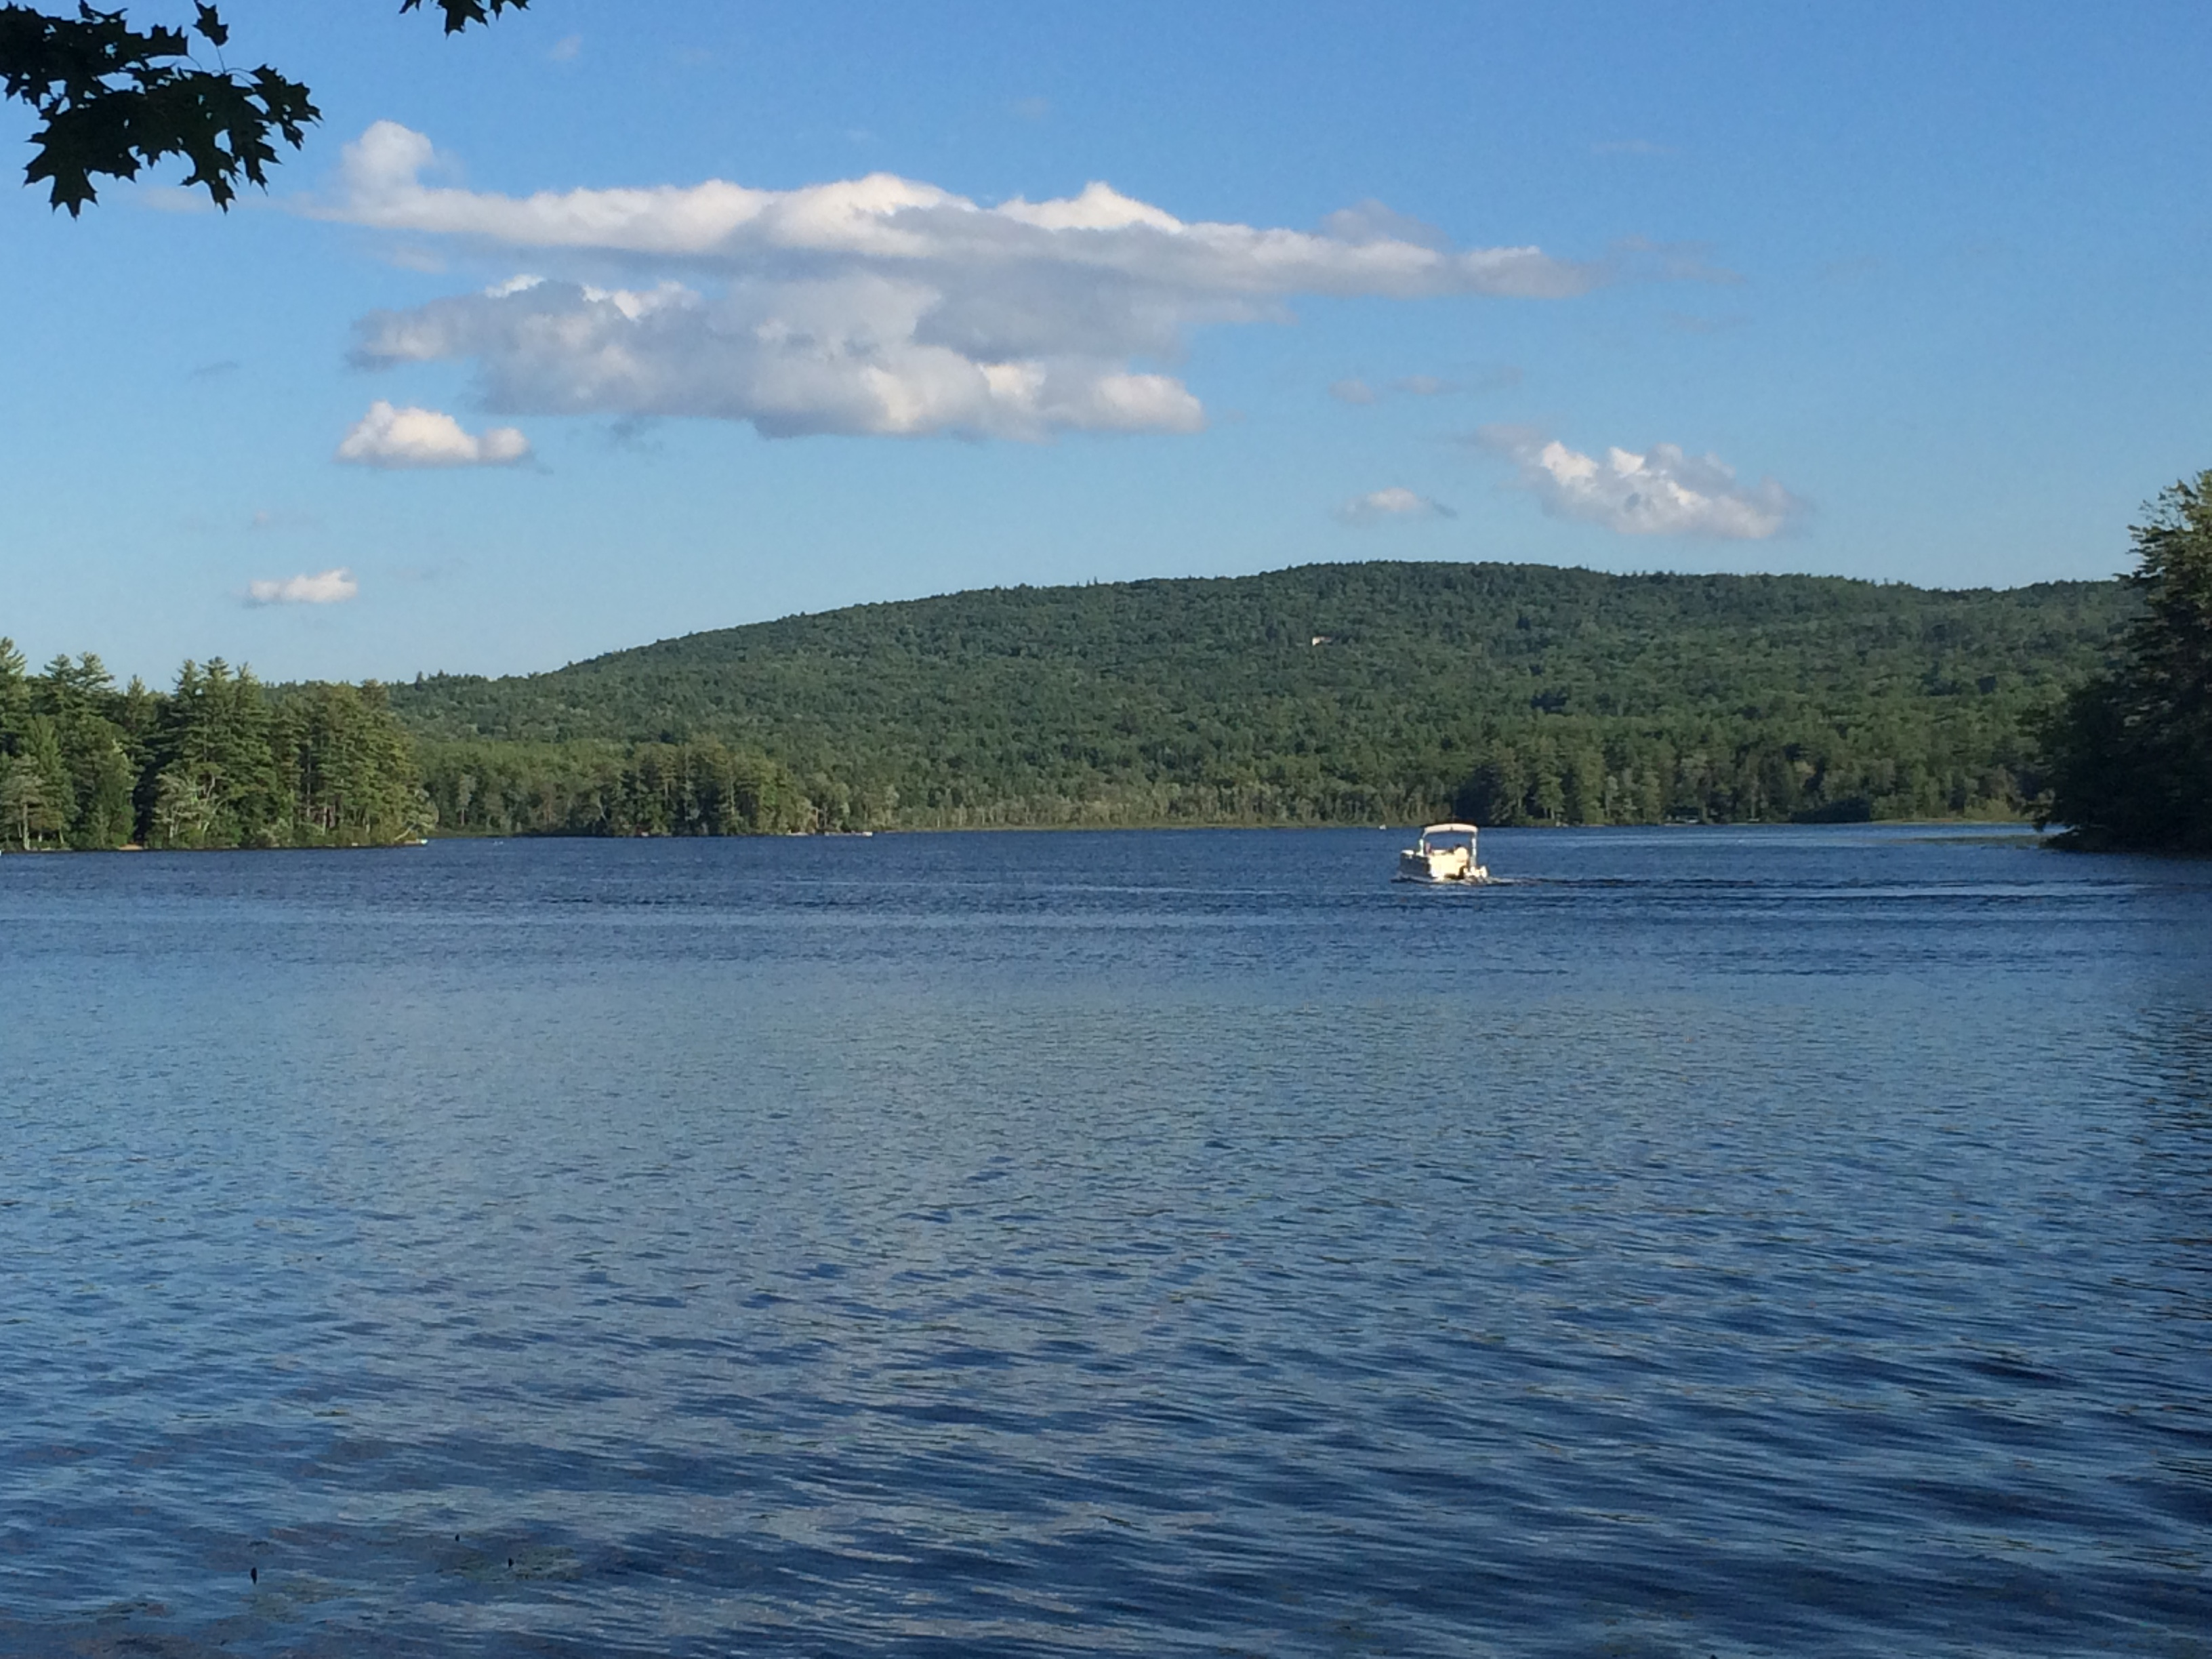 searches additional estate real family watkins winnipesaukee cabins compounds nicole lake region lakes